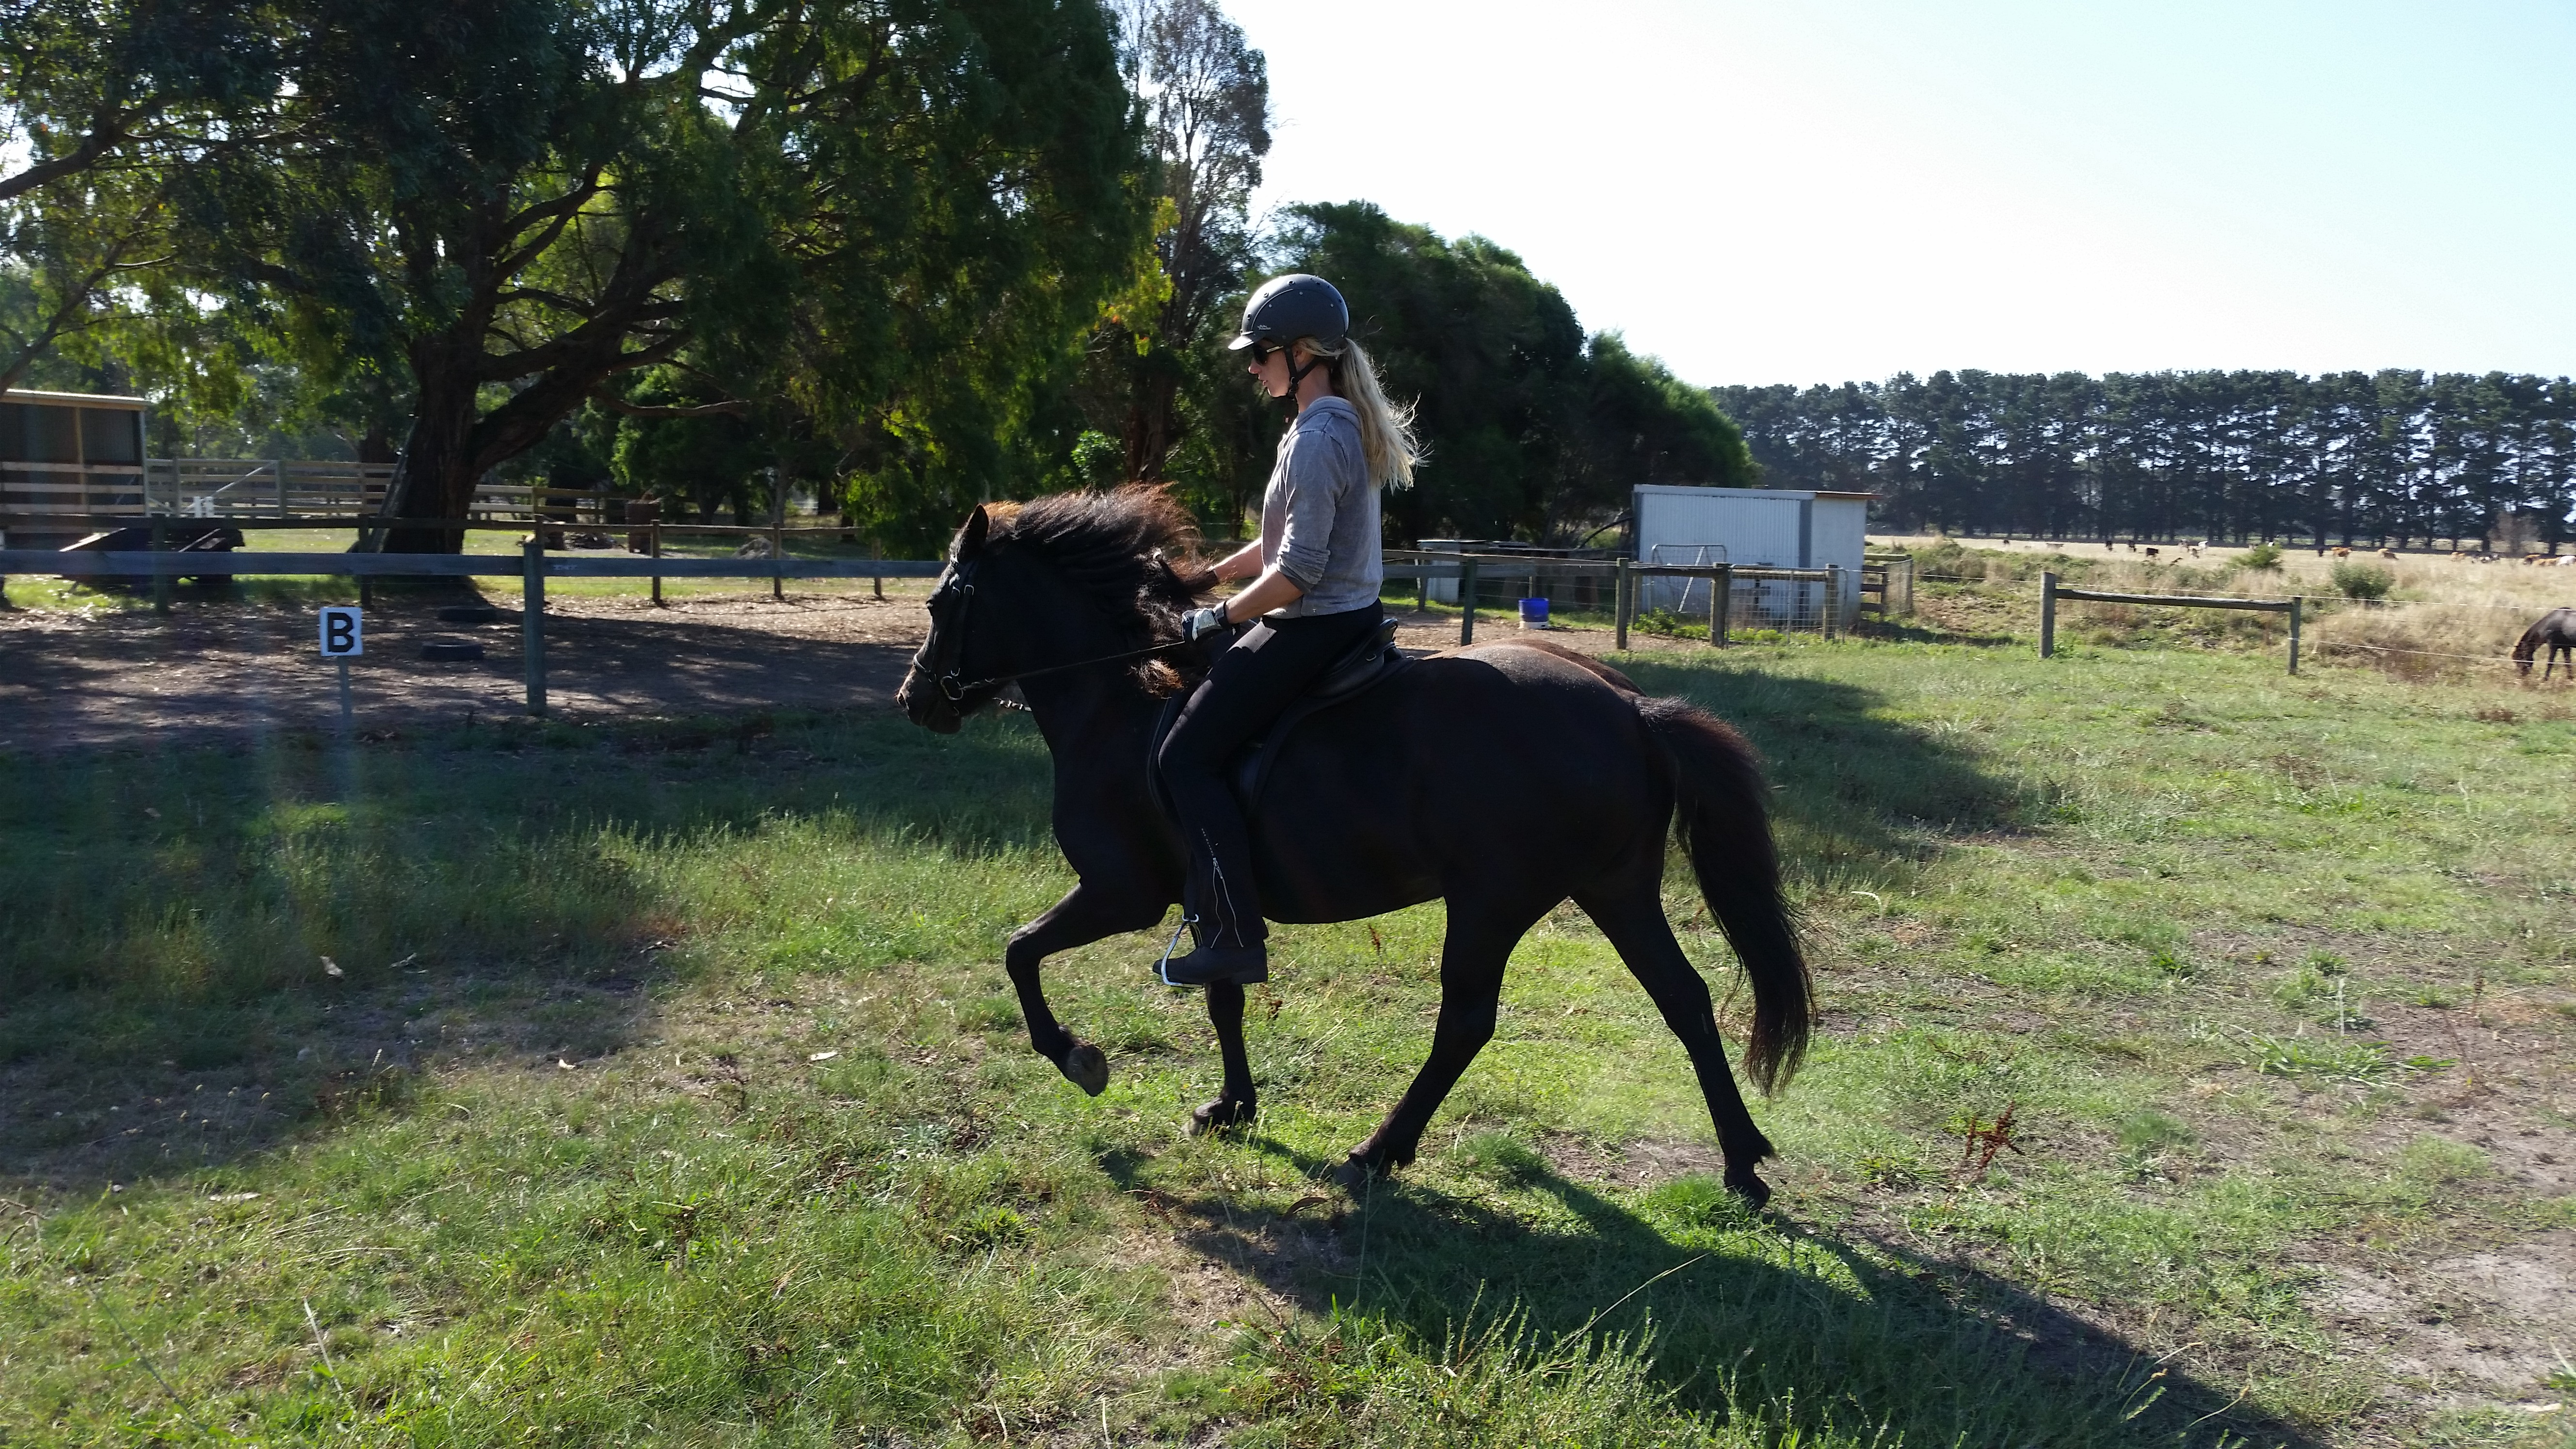 Elja just started under saddle